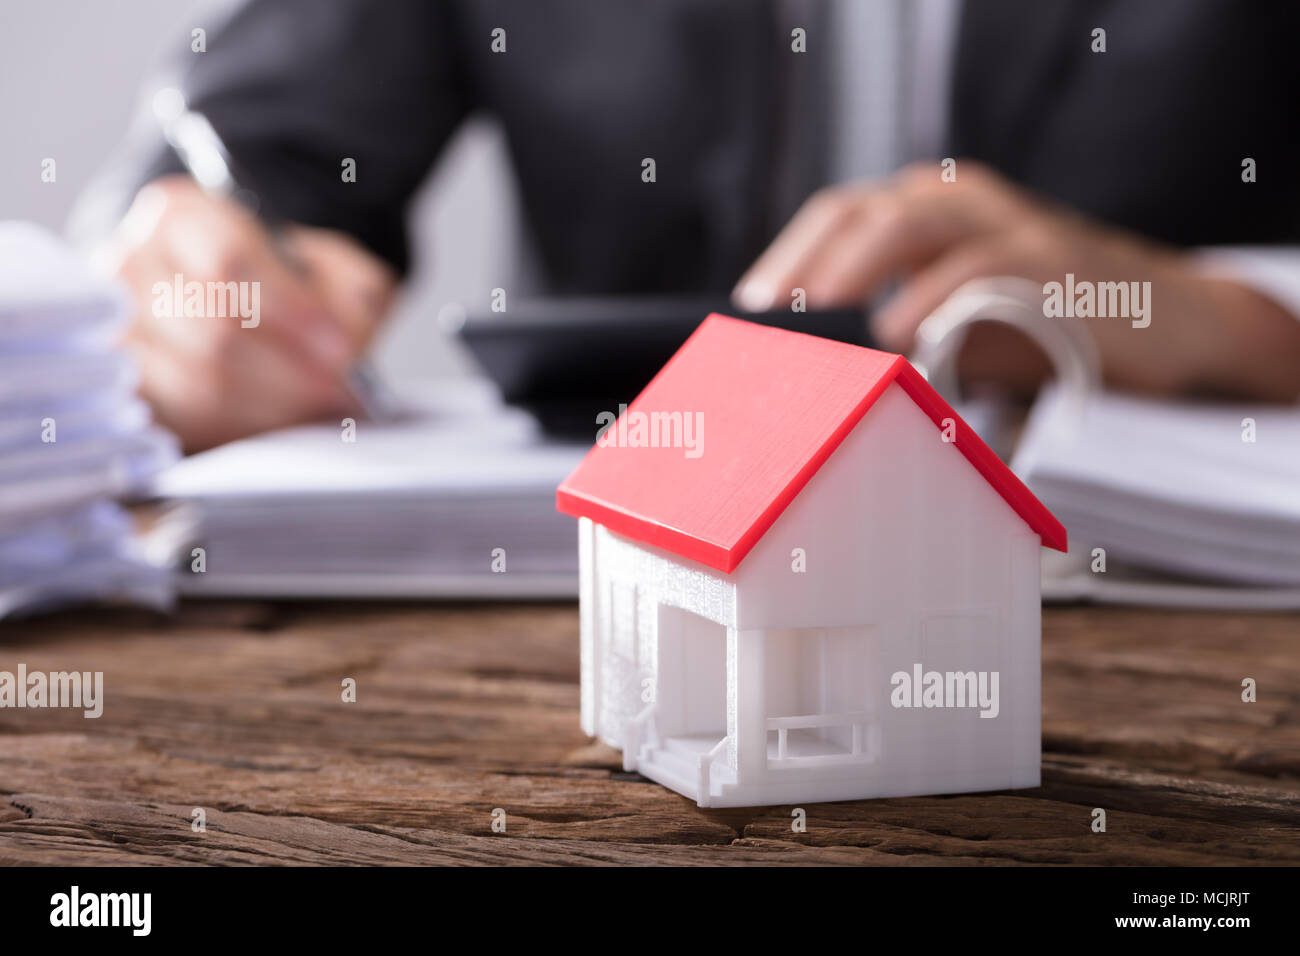 Close-up Of A House Model With Red Roof On Wooden Desk - Stock Image